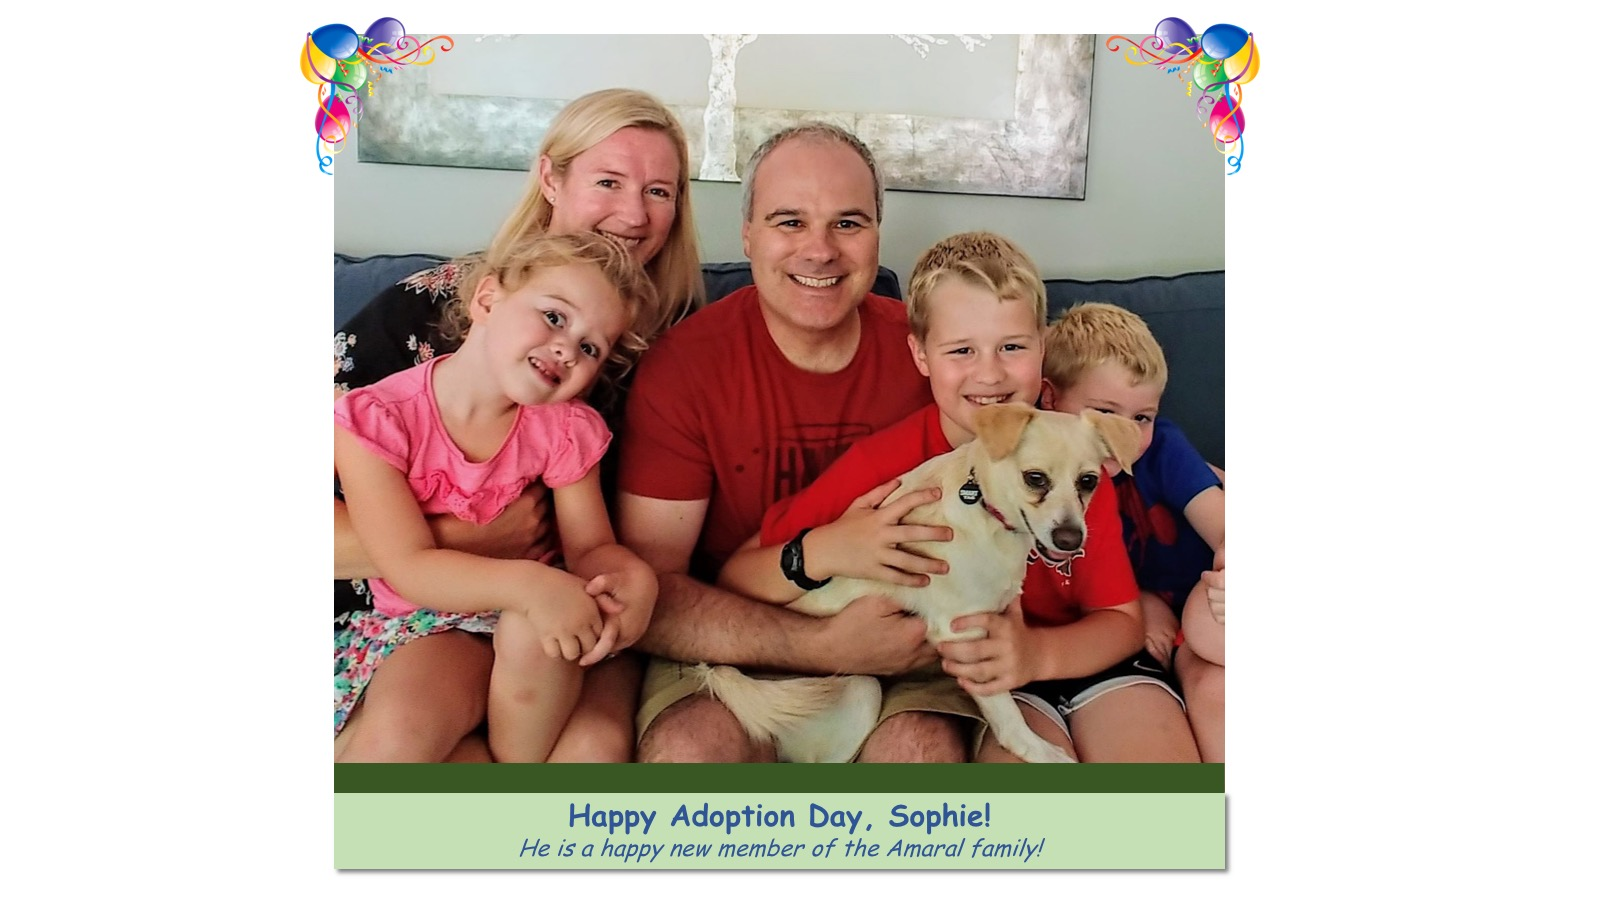 Sophie_Adoption_Photo_2018.jpg